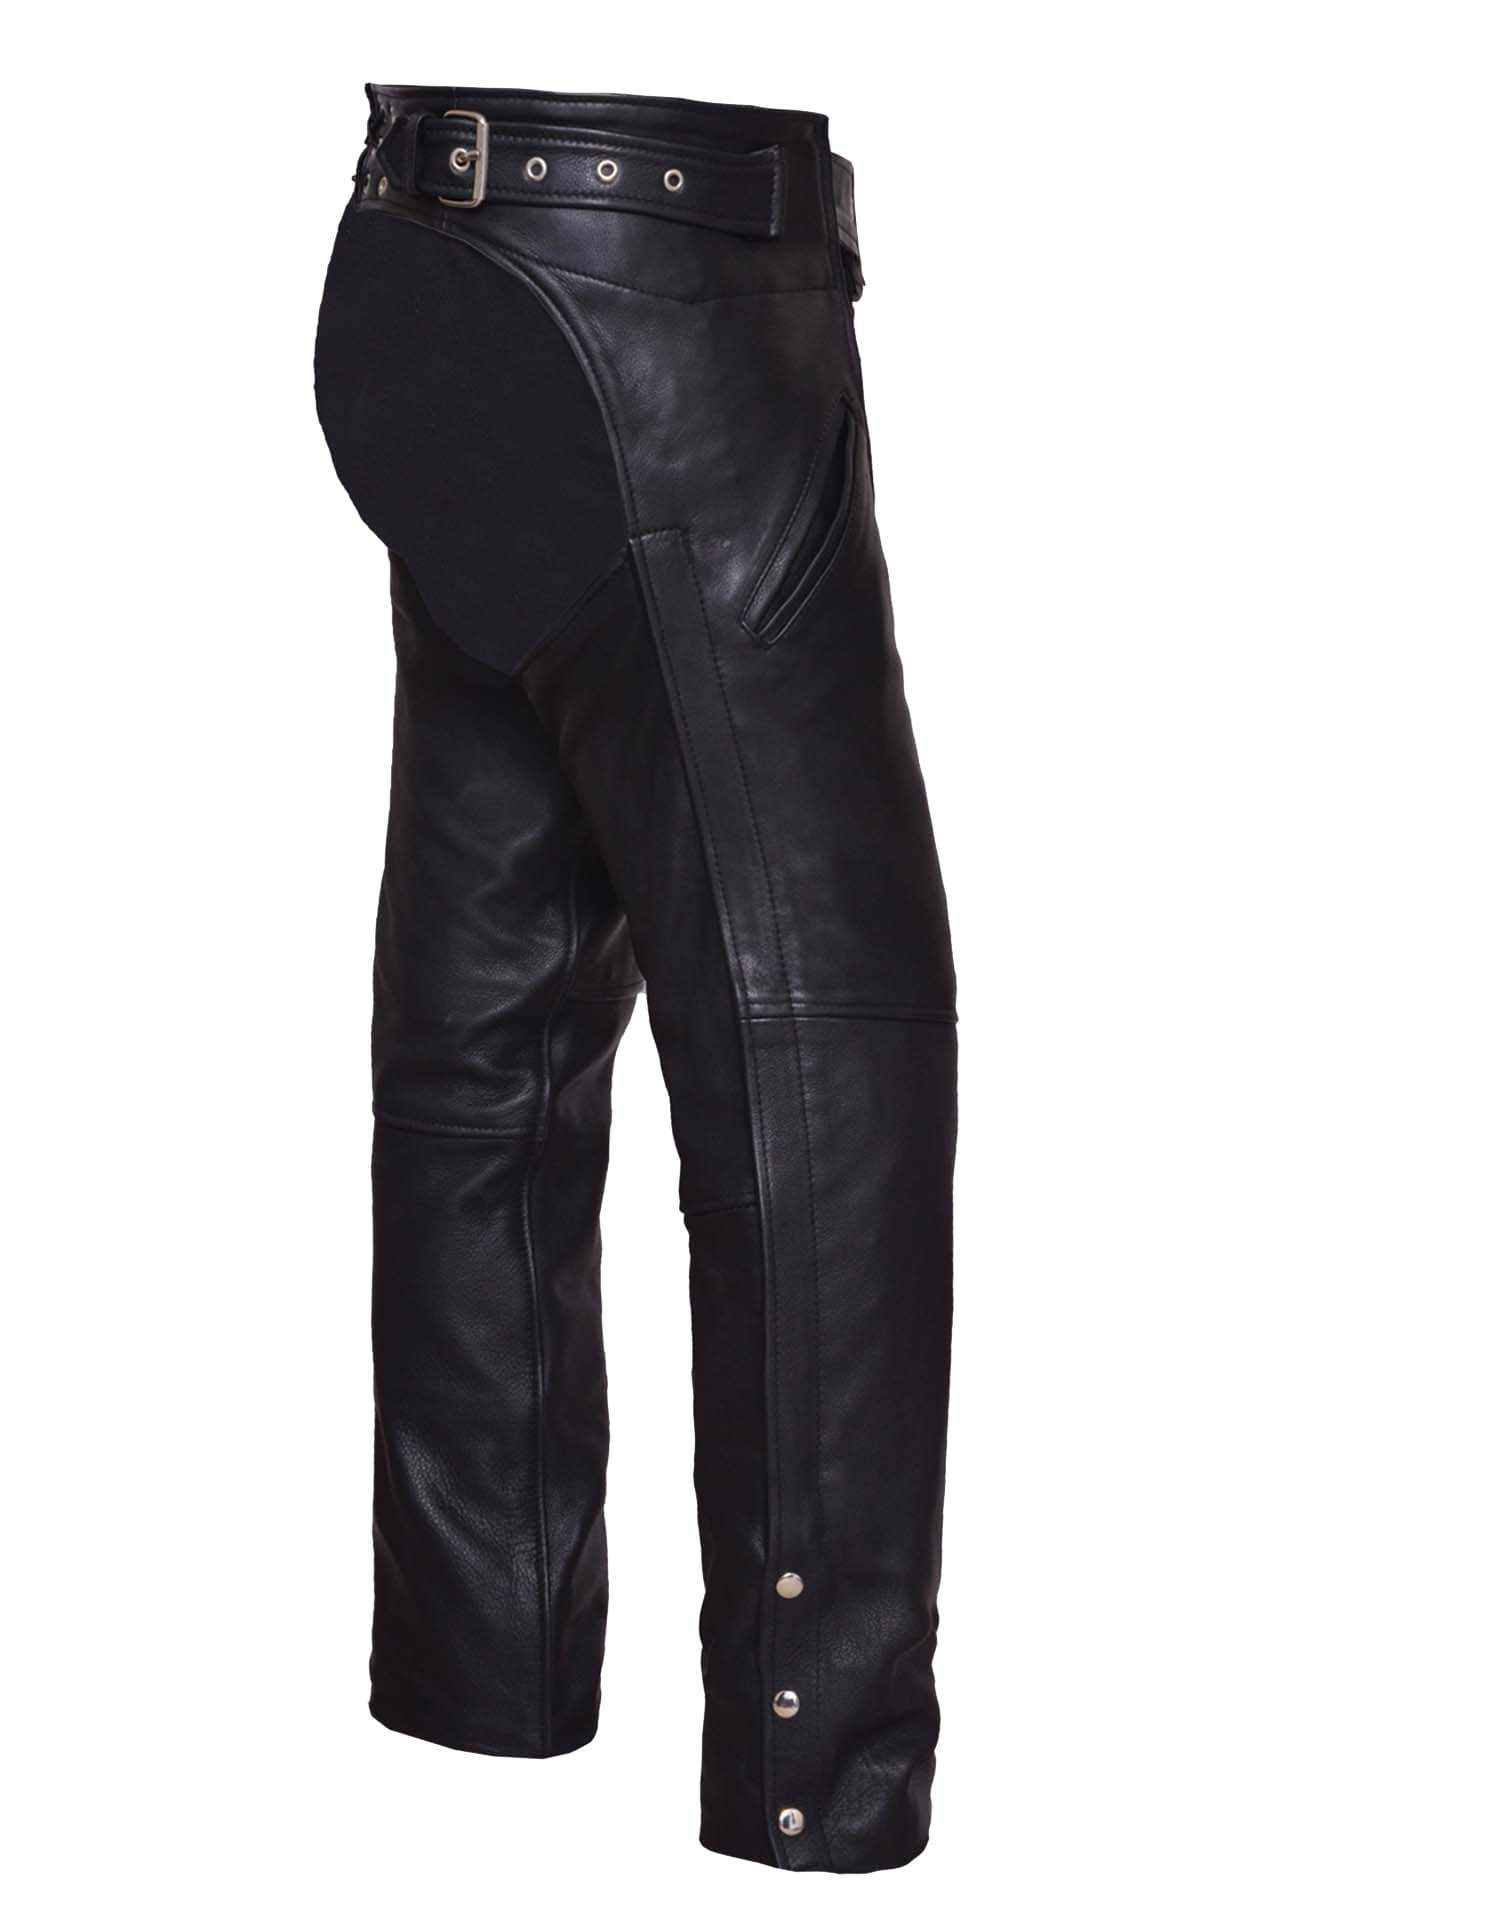 UNIK Unisex Ultra Leather Motorcycle Chaps - SKU 6126-00-UN